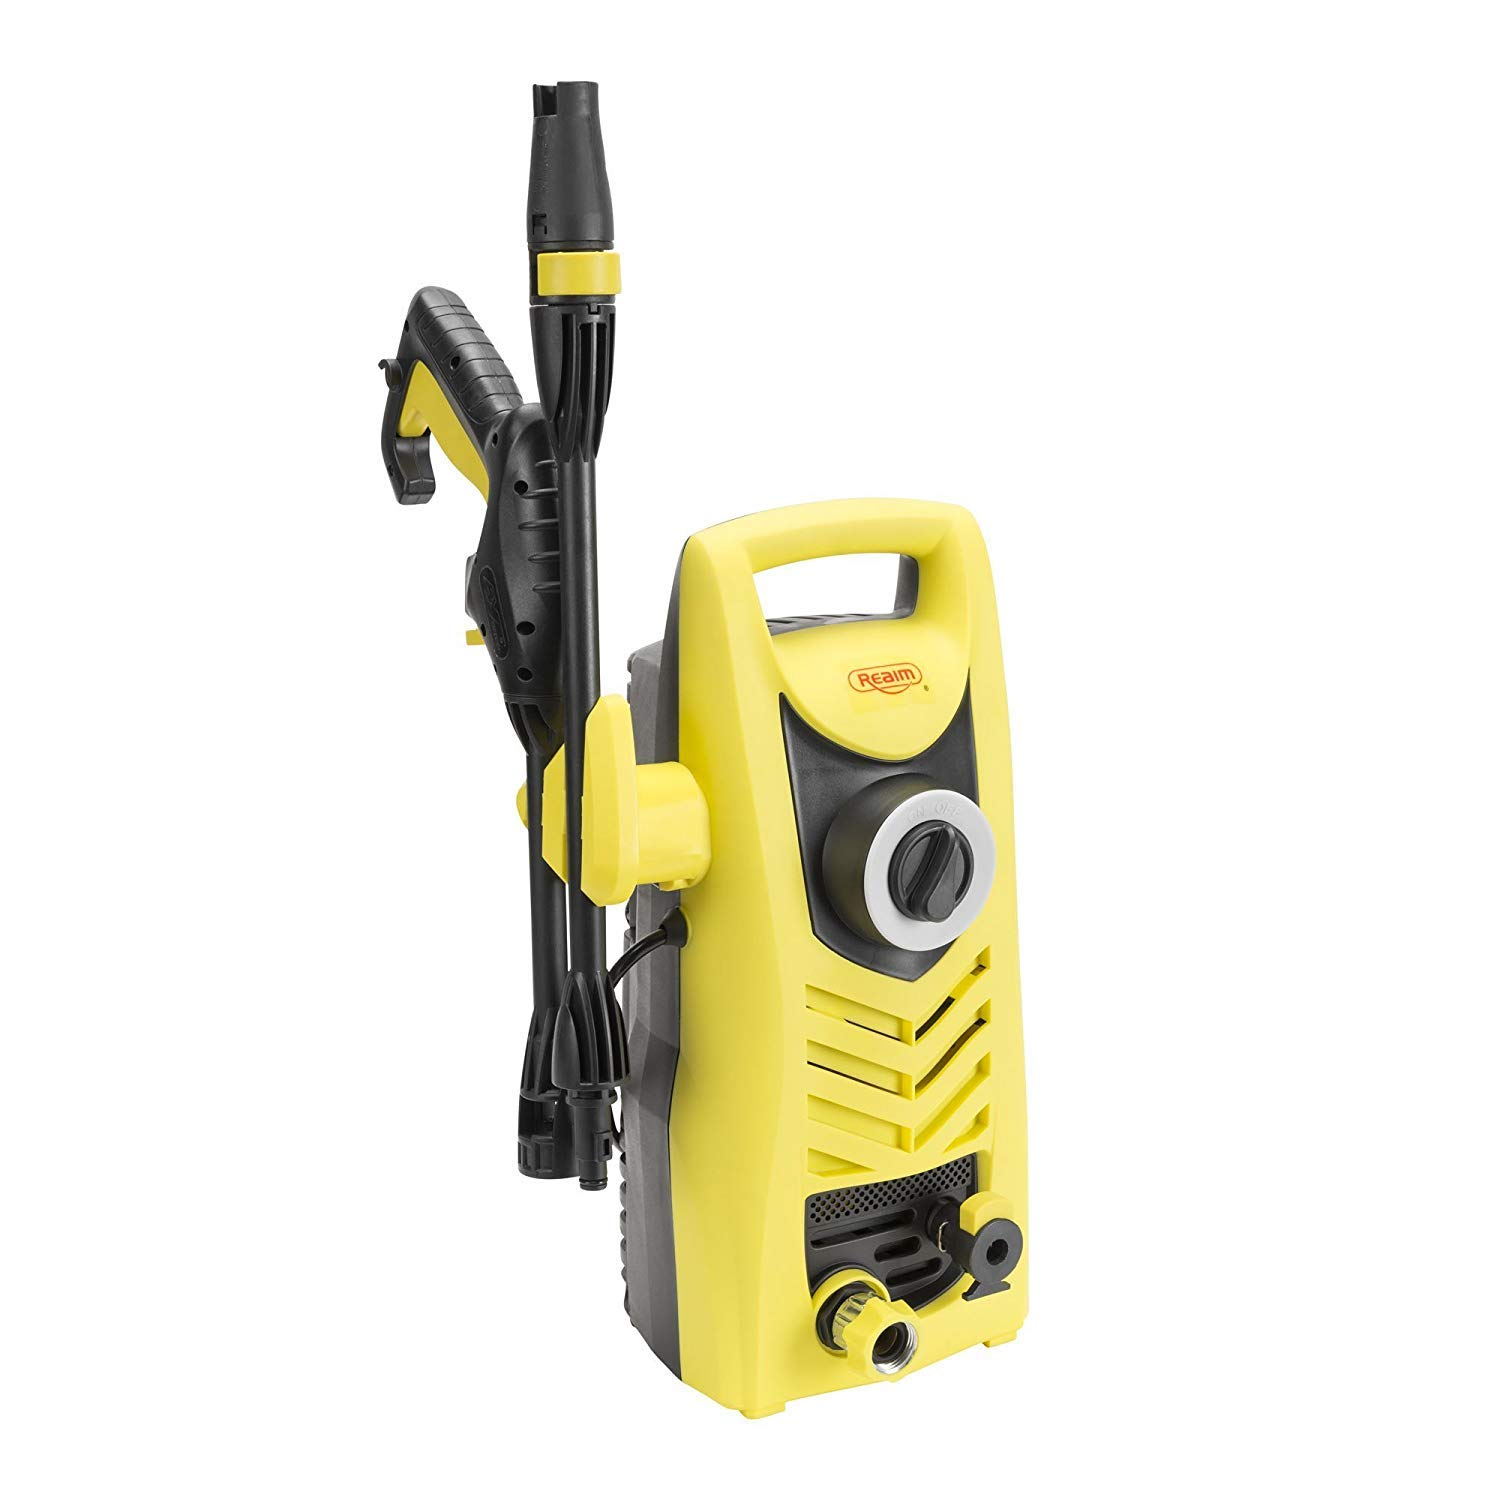 Realm 1600 PSI, 1.6 GPM, 13 Amp Electric Pressure Washer with Spray Gun,Adjustable Nozzle,Foam Cannon, Yellow Black